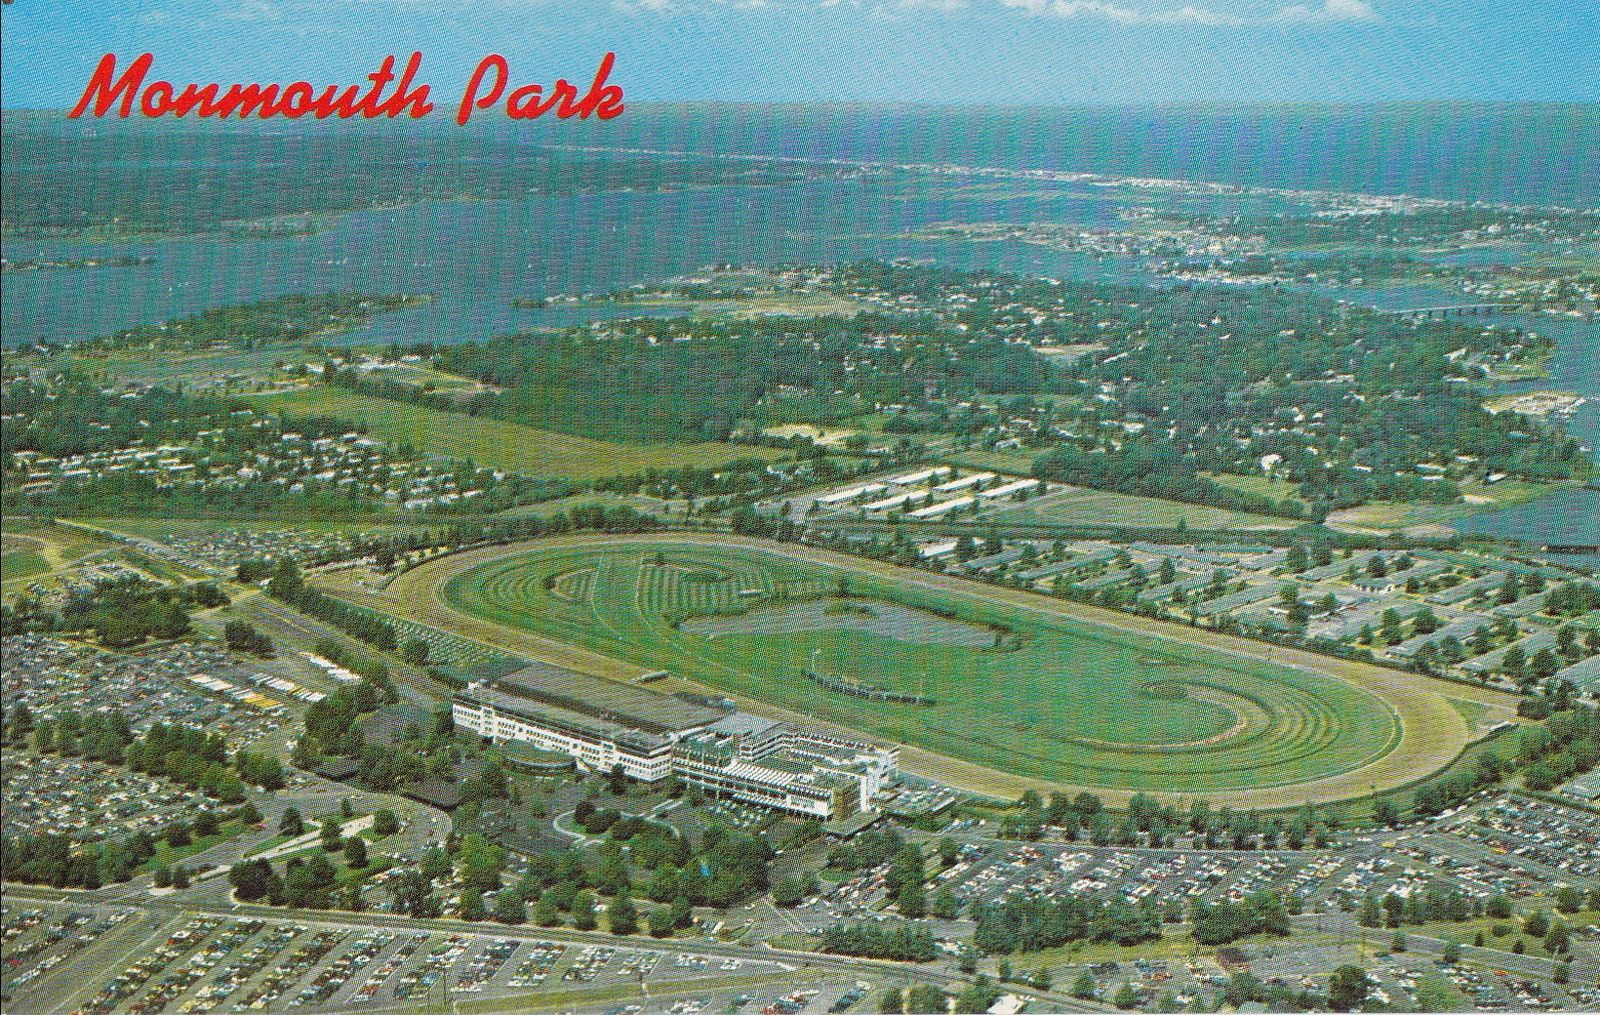 An aerial view of Monmouth Park Racetrack in Oceanport NJ circa